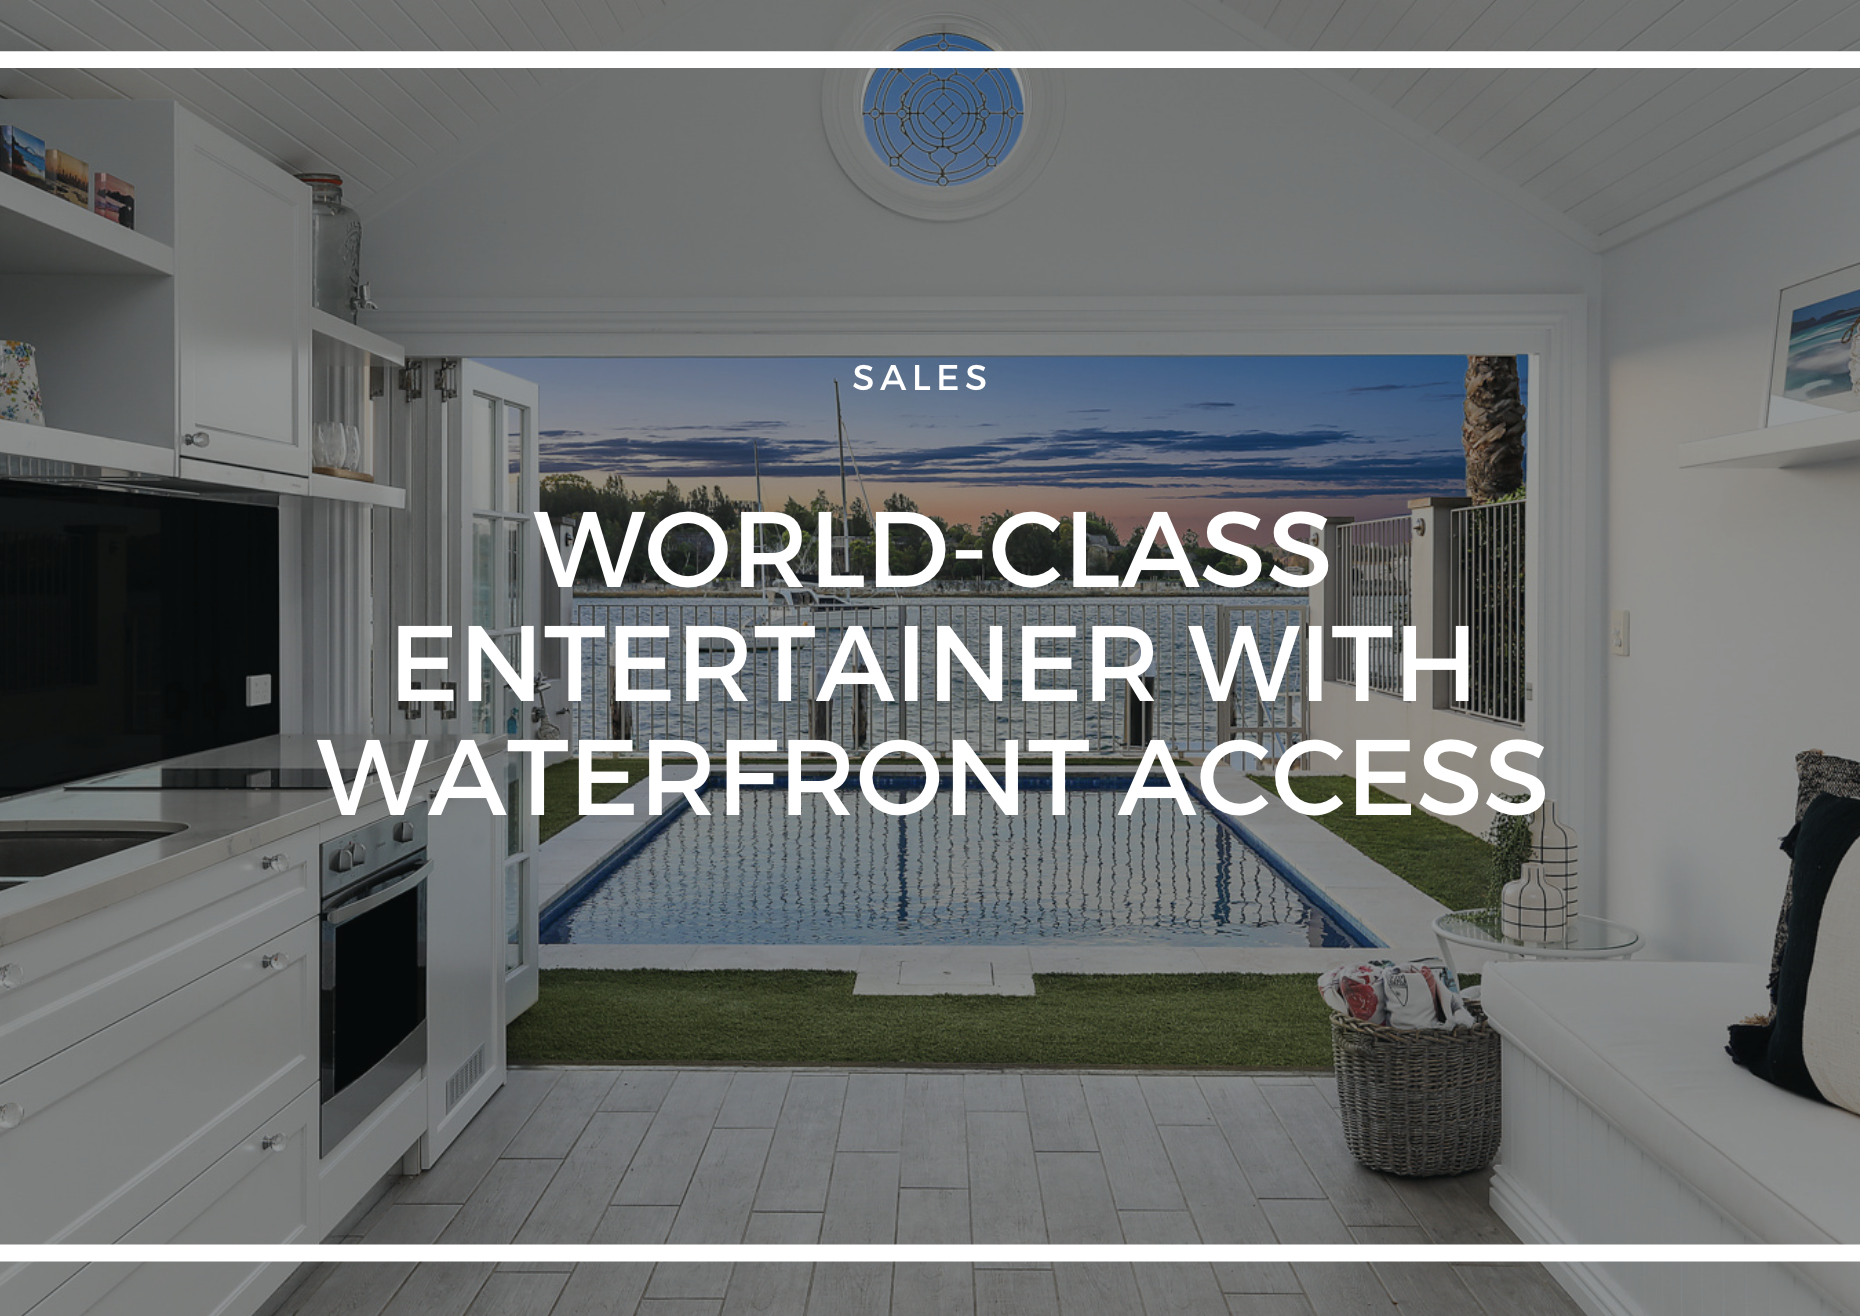 WORLD-CLASS ENTERTAINER WITH WATERFRONT ACCESS